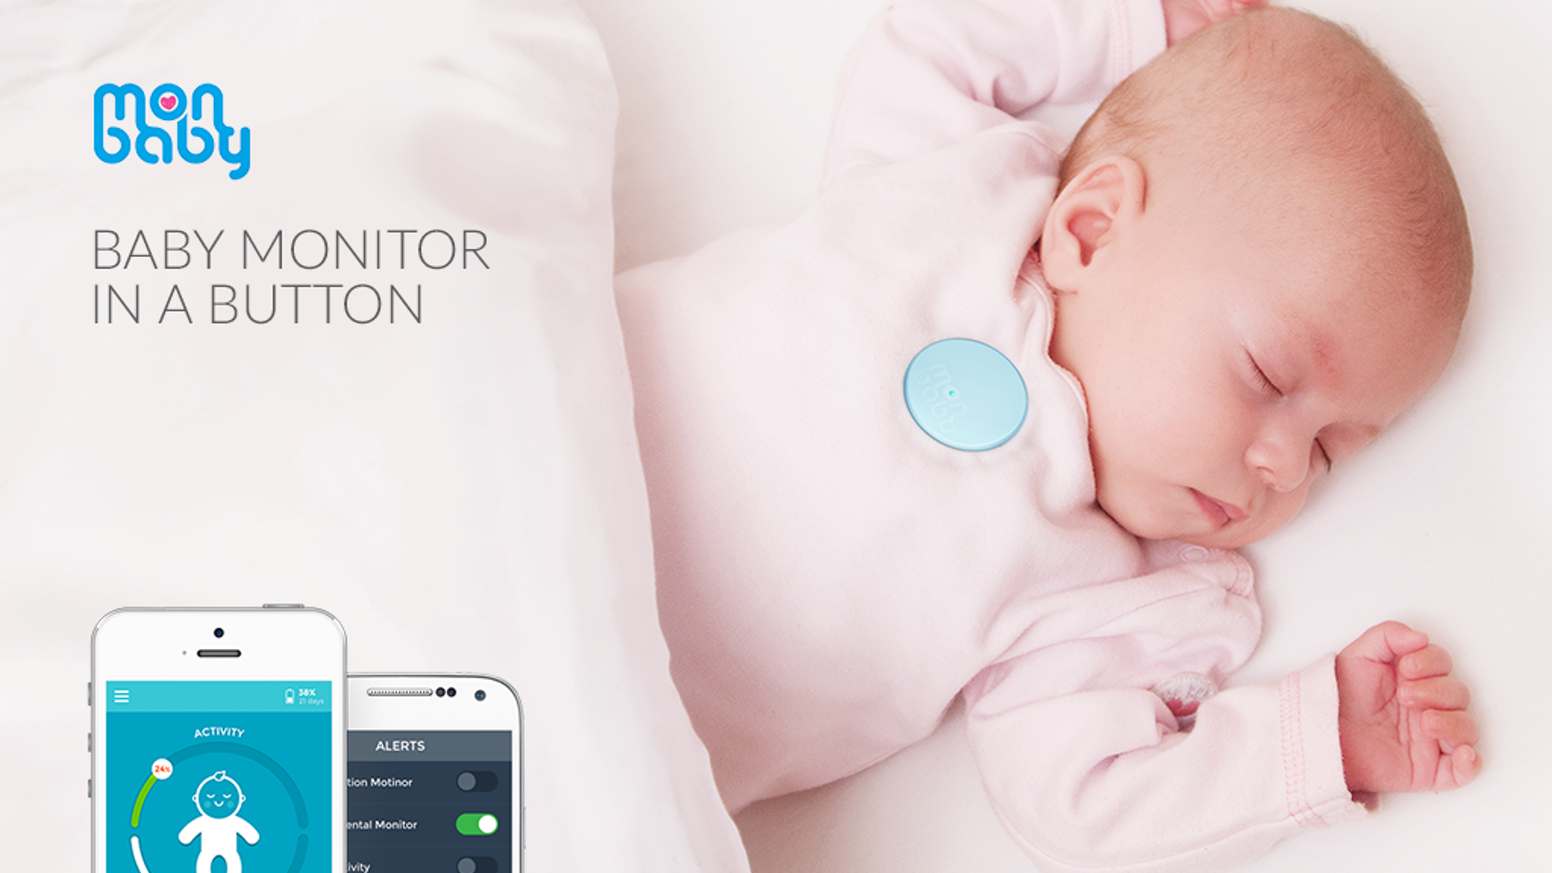 MonBaby is a wearable baby monitor that tracks your child's breathing, movement and sleep patterns on an iPhone/Android app.